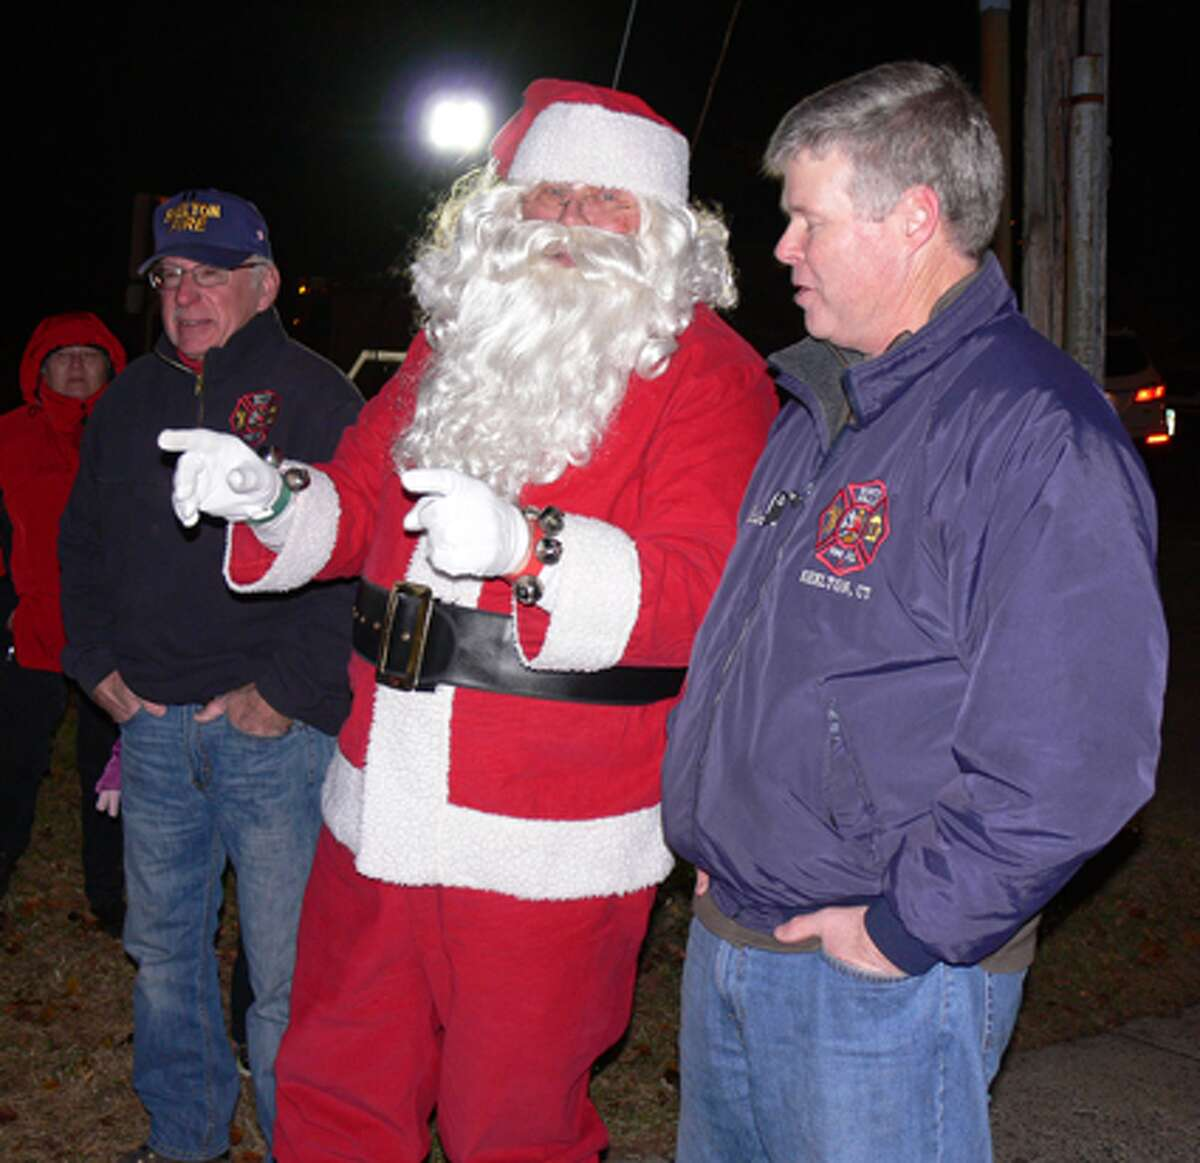 Santa chats with the fire company's Brian McCue after arriving by firetruck to meet with children from the neighborhood.